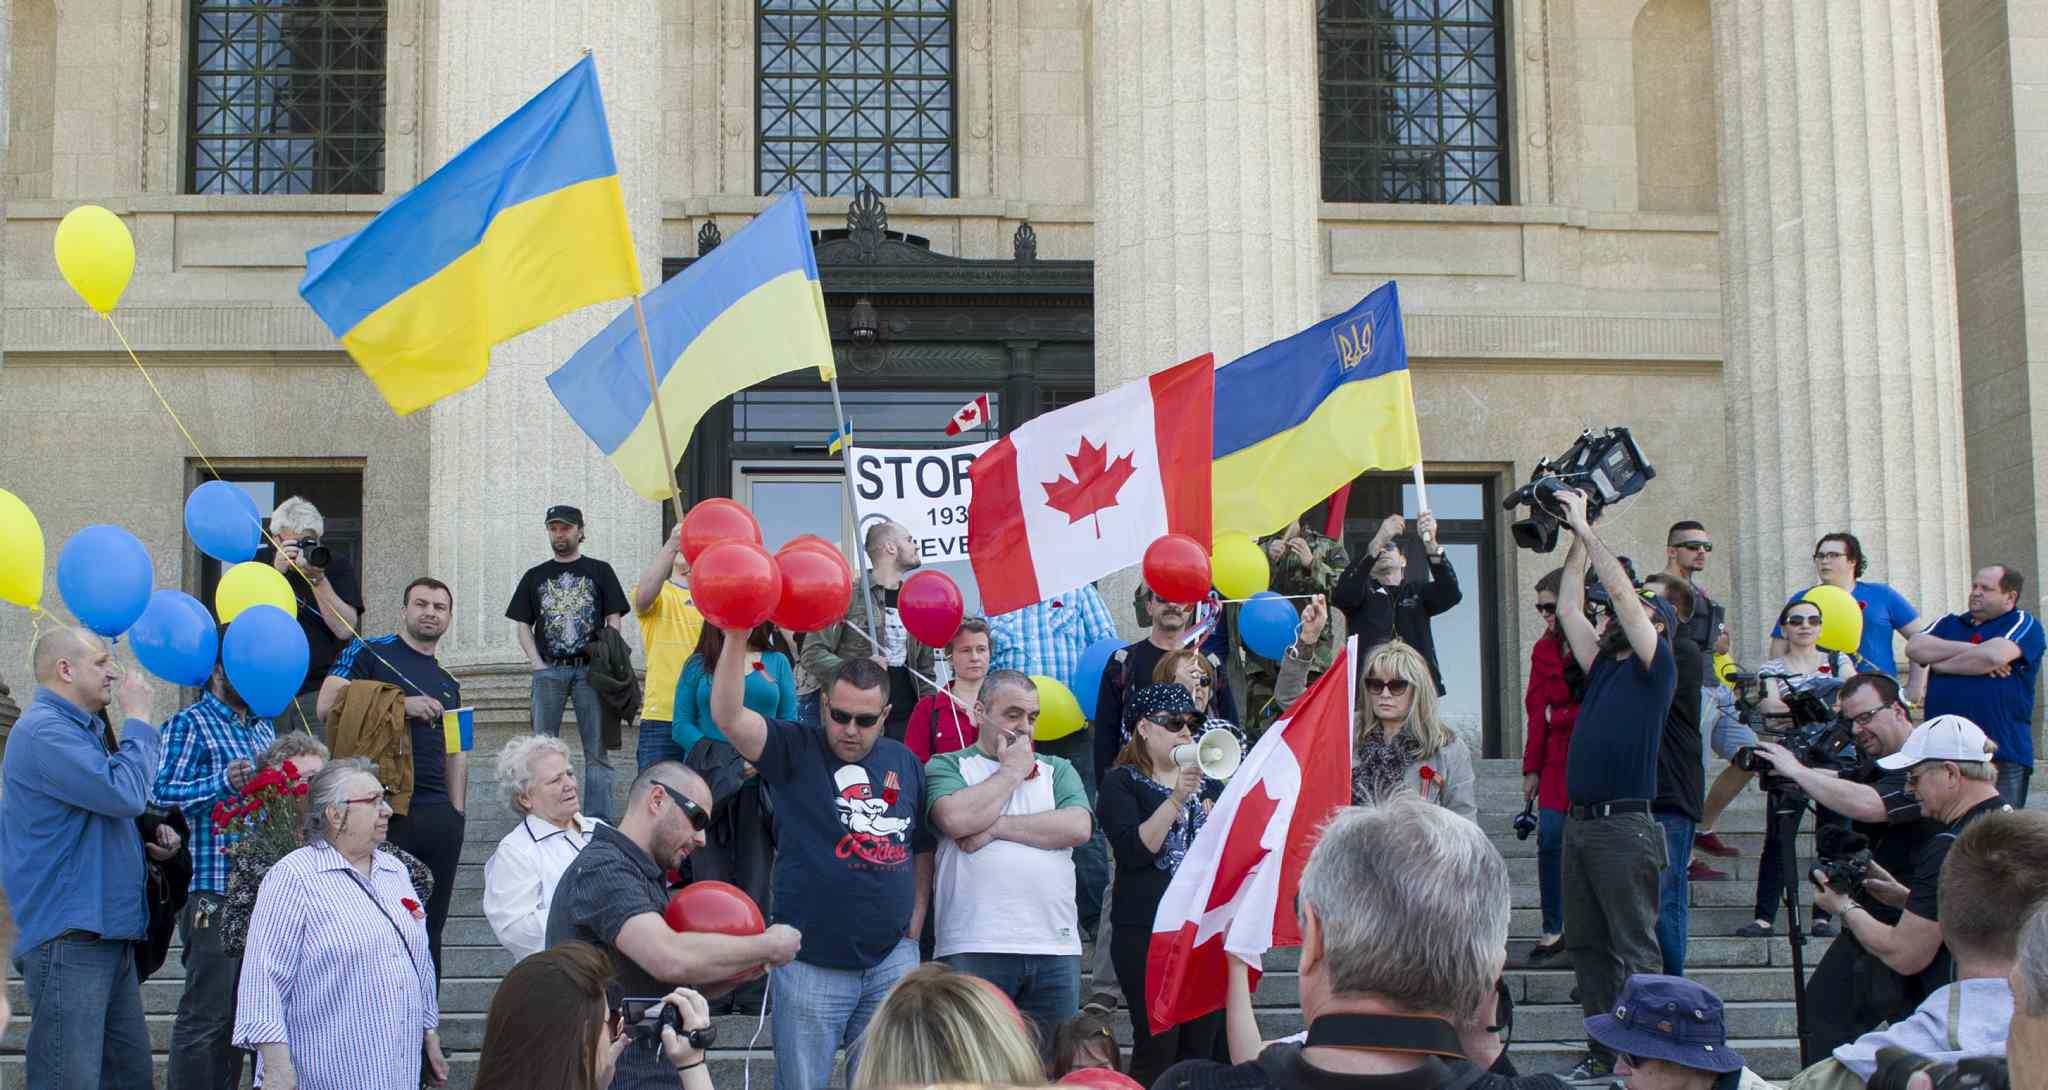 A Russian group organized Winnipeg's Victory Day parade commemorating the defeat of Nazi Germany in the Second World War at the Manitoba Legislature Building Saturday afternoon. Some wore St. George's ribbons, which led to confrontations with members of the Ukrainian community.